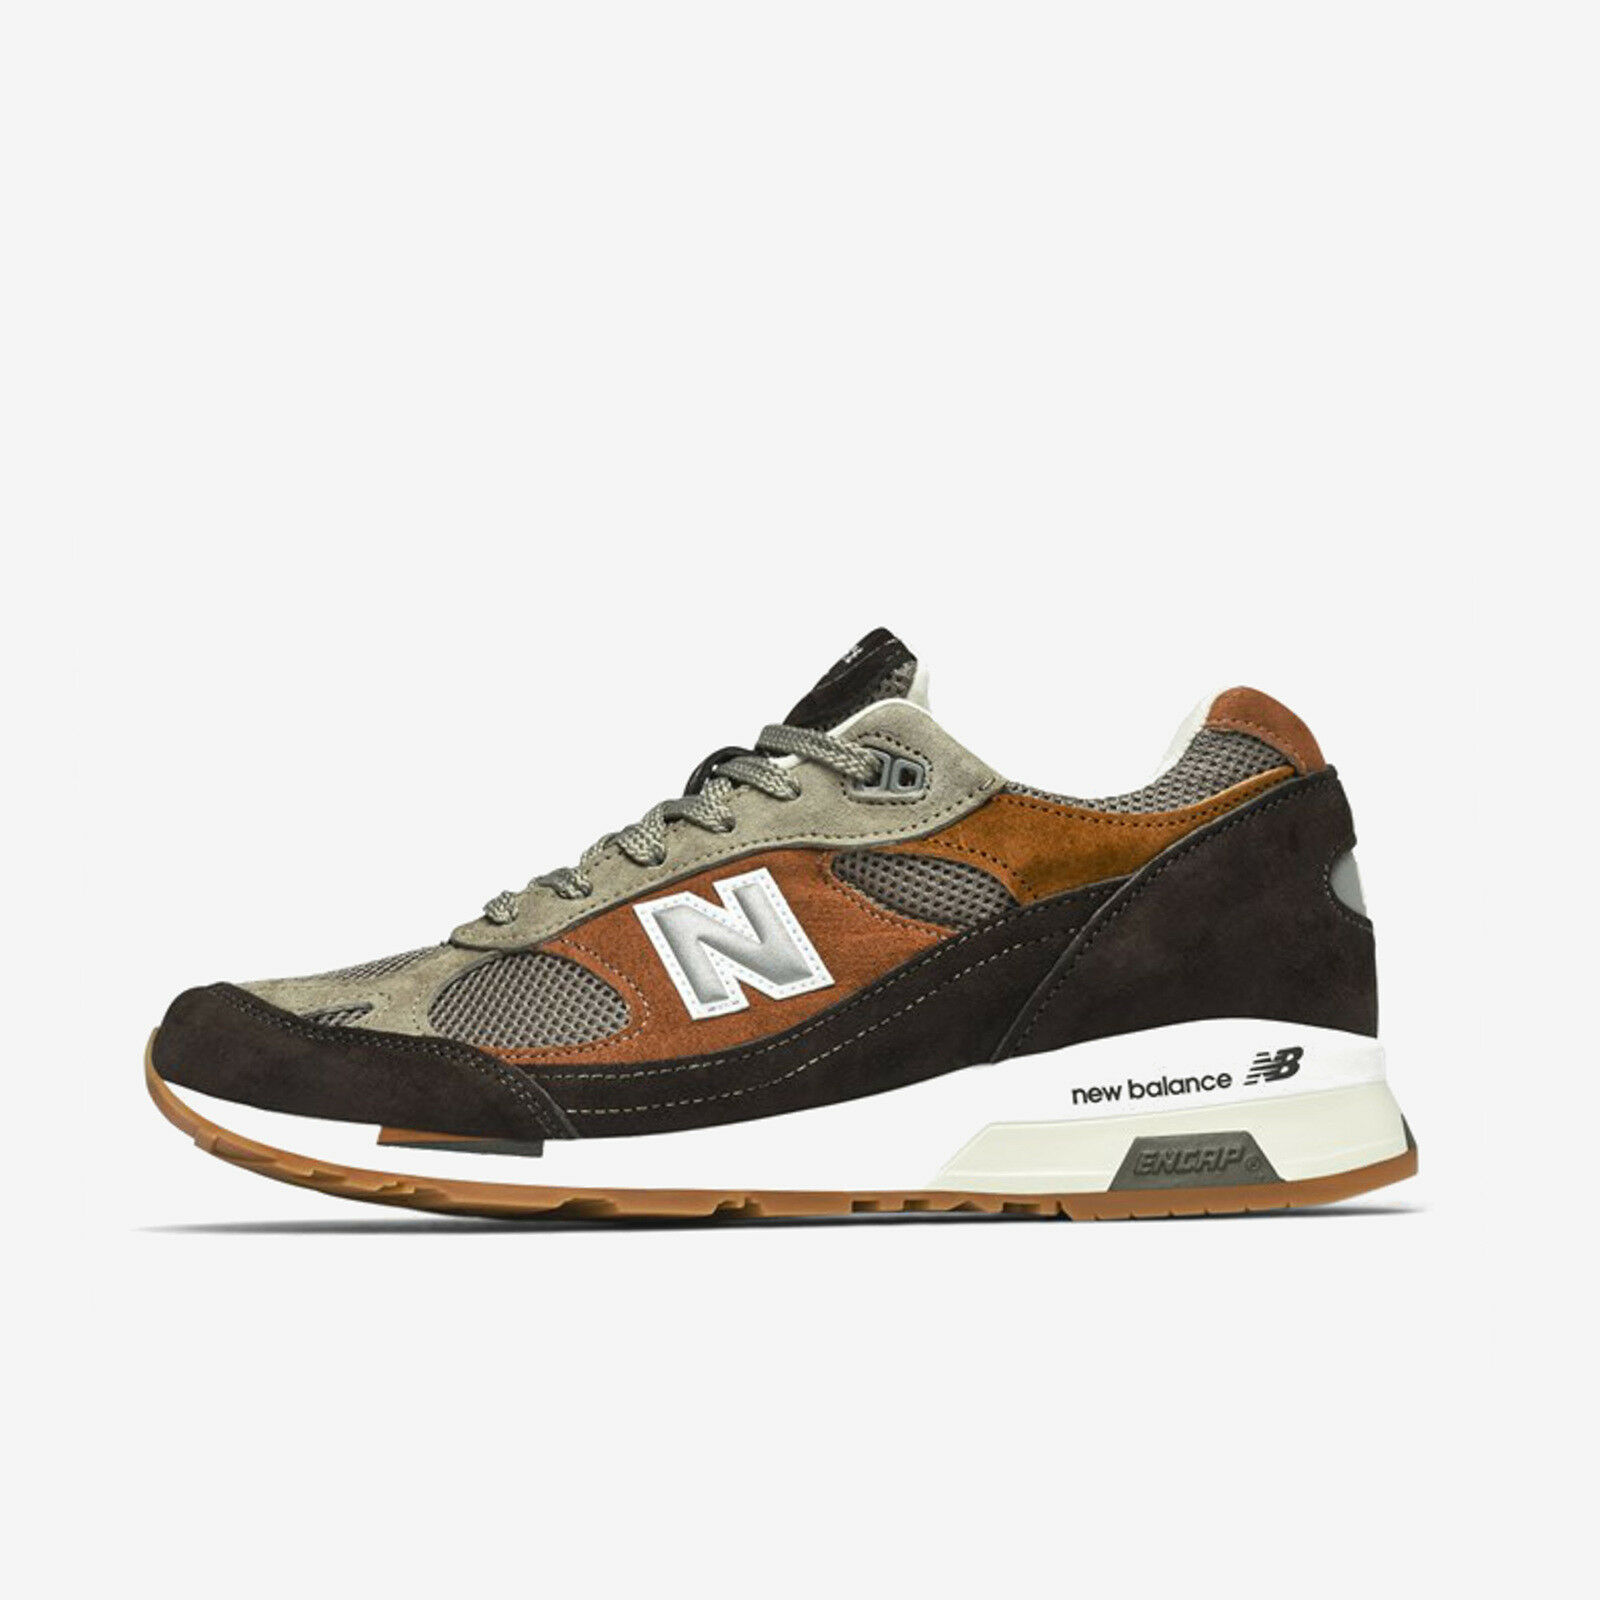 NEW BALANCE M9915FT MADE IN UK ENGLAND YARD SOLWAY EXCURSION PACK M991 991 990